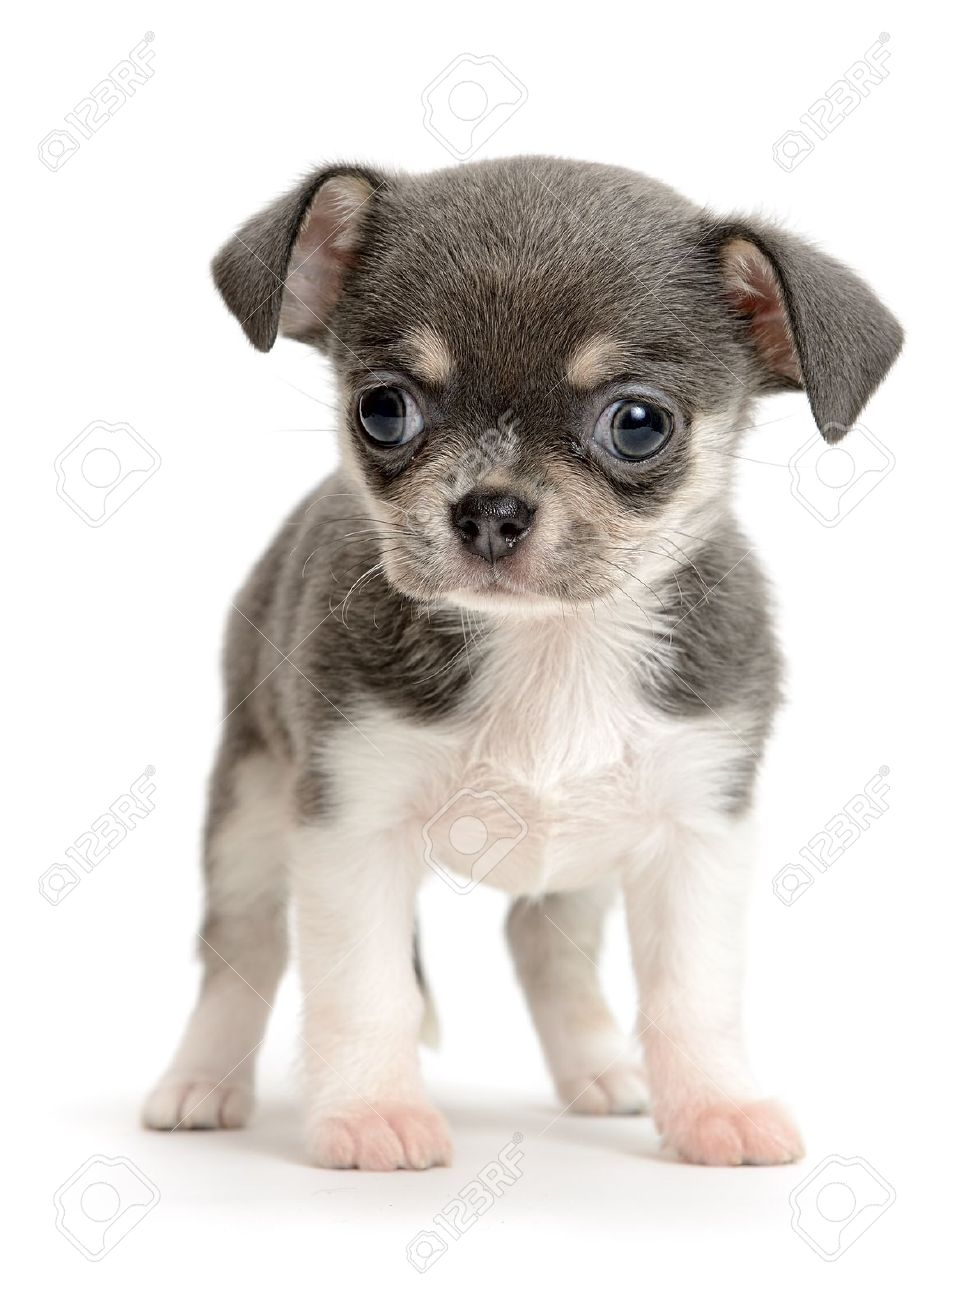 Chihuahua Puppy The Age Of 2 Month Isolated On White Stock Photo Picture And Royalty Free Image Image 15069128